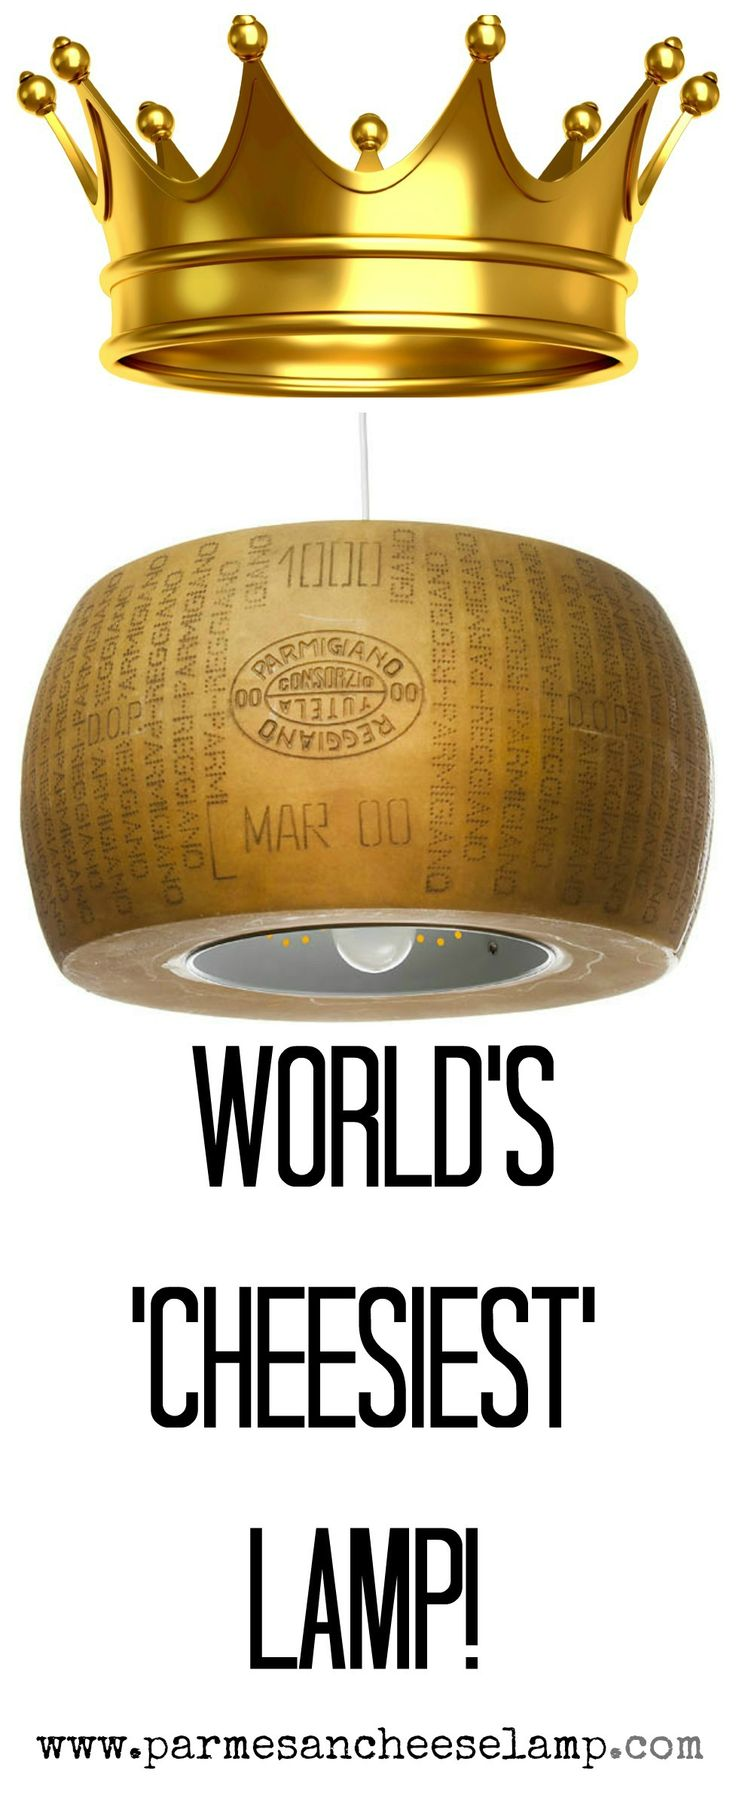 The world's cheesiest lamp ever!